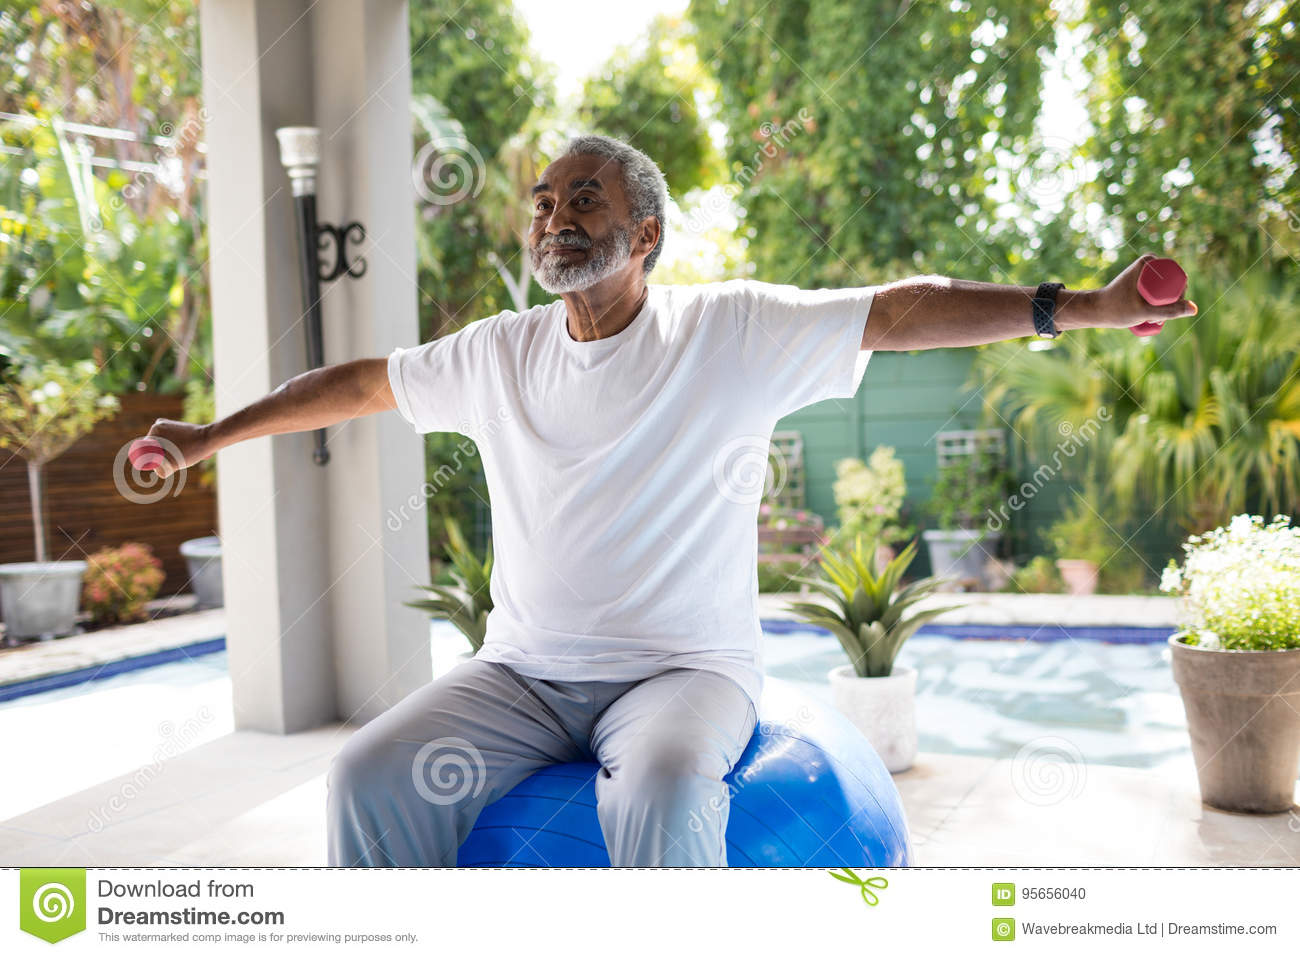 Senior man with arms outstretched lifting dumbbell while exercising